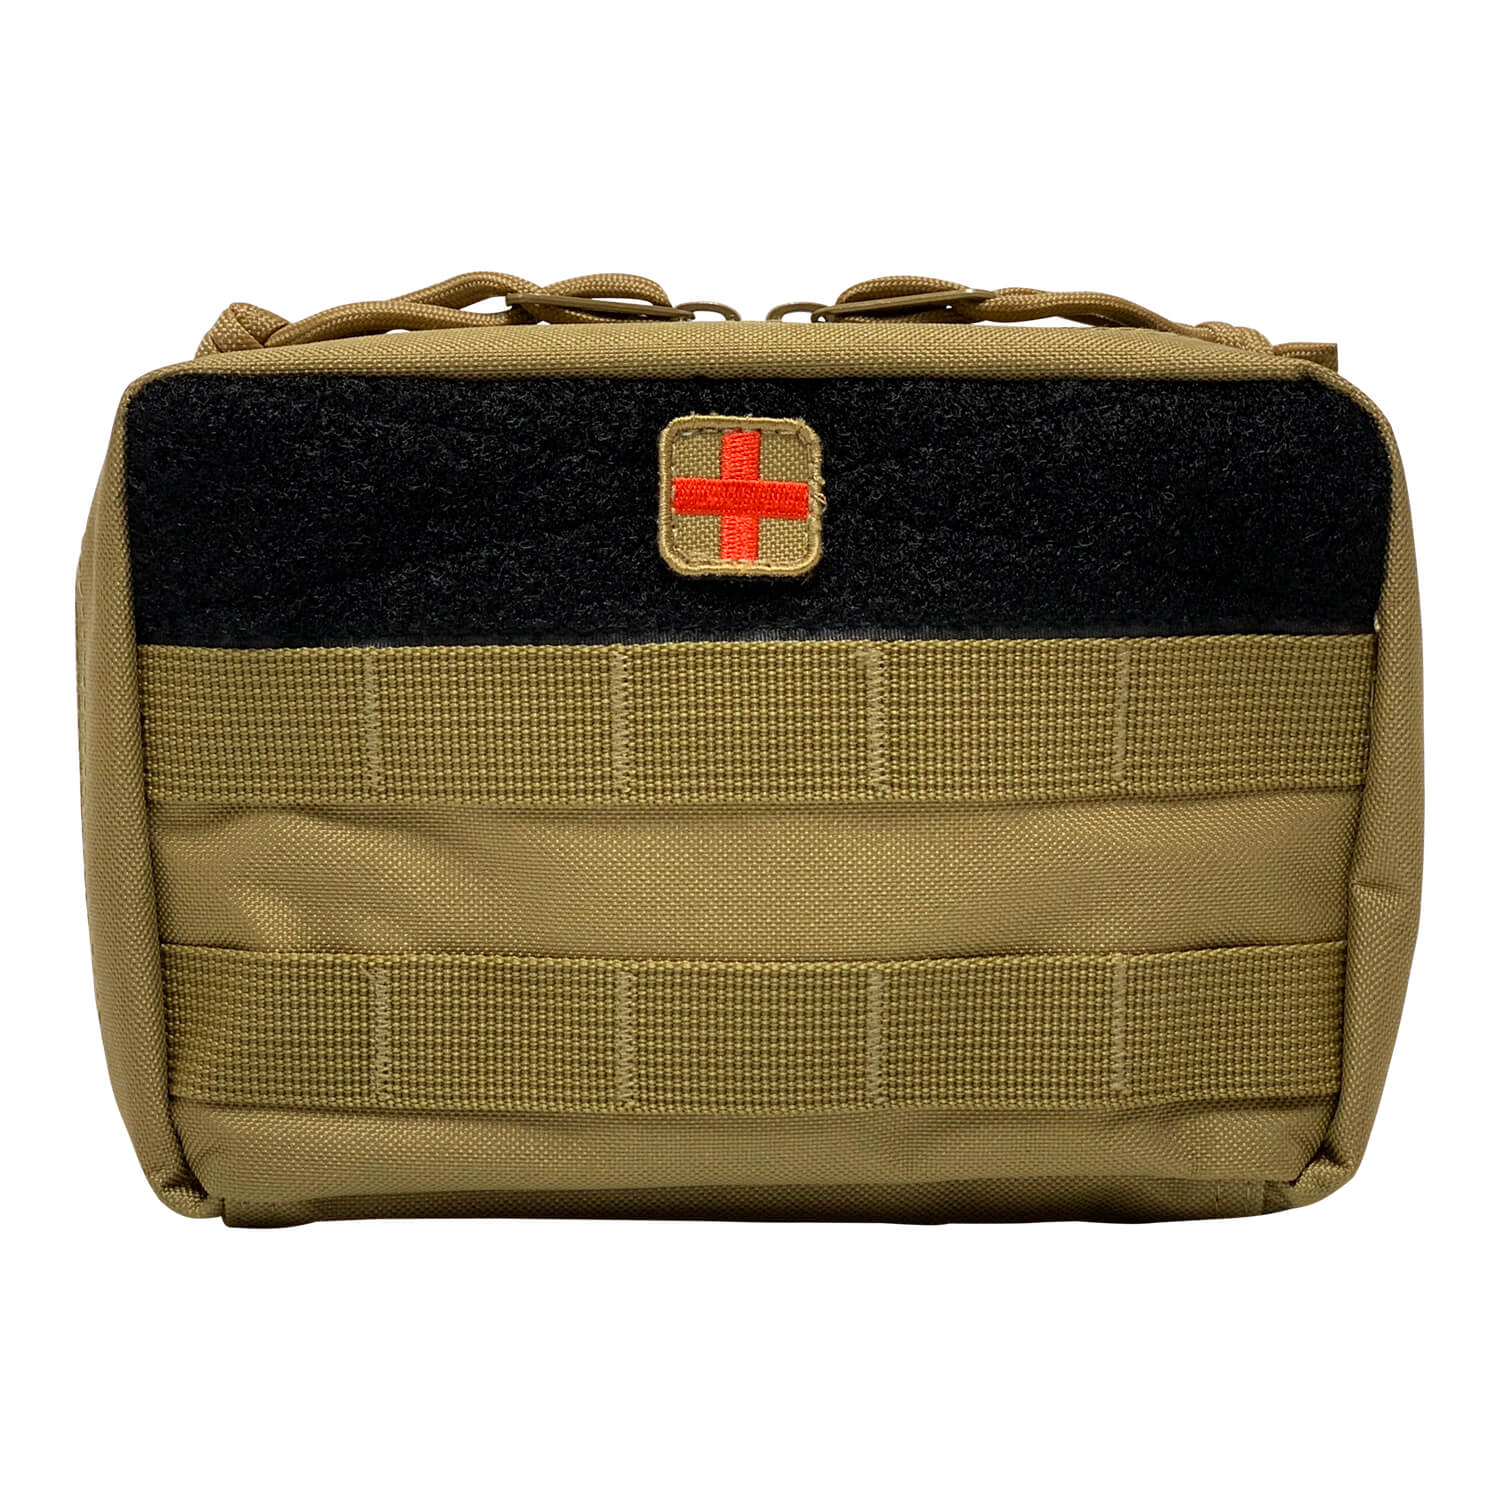 First Aid Kit Pouches - Black - Front